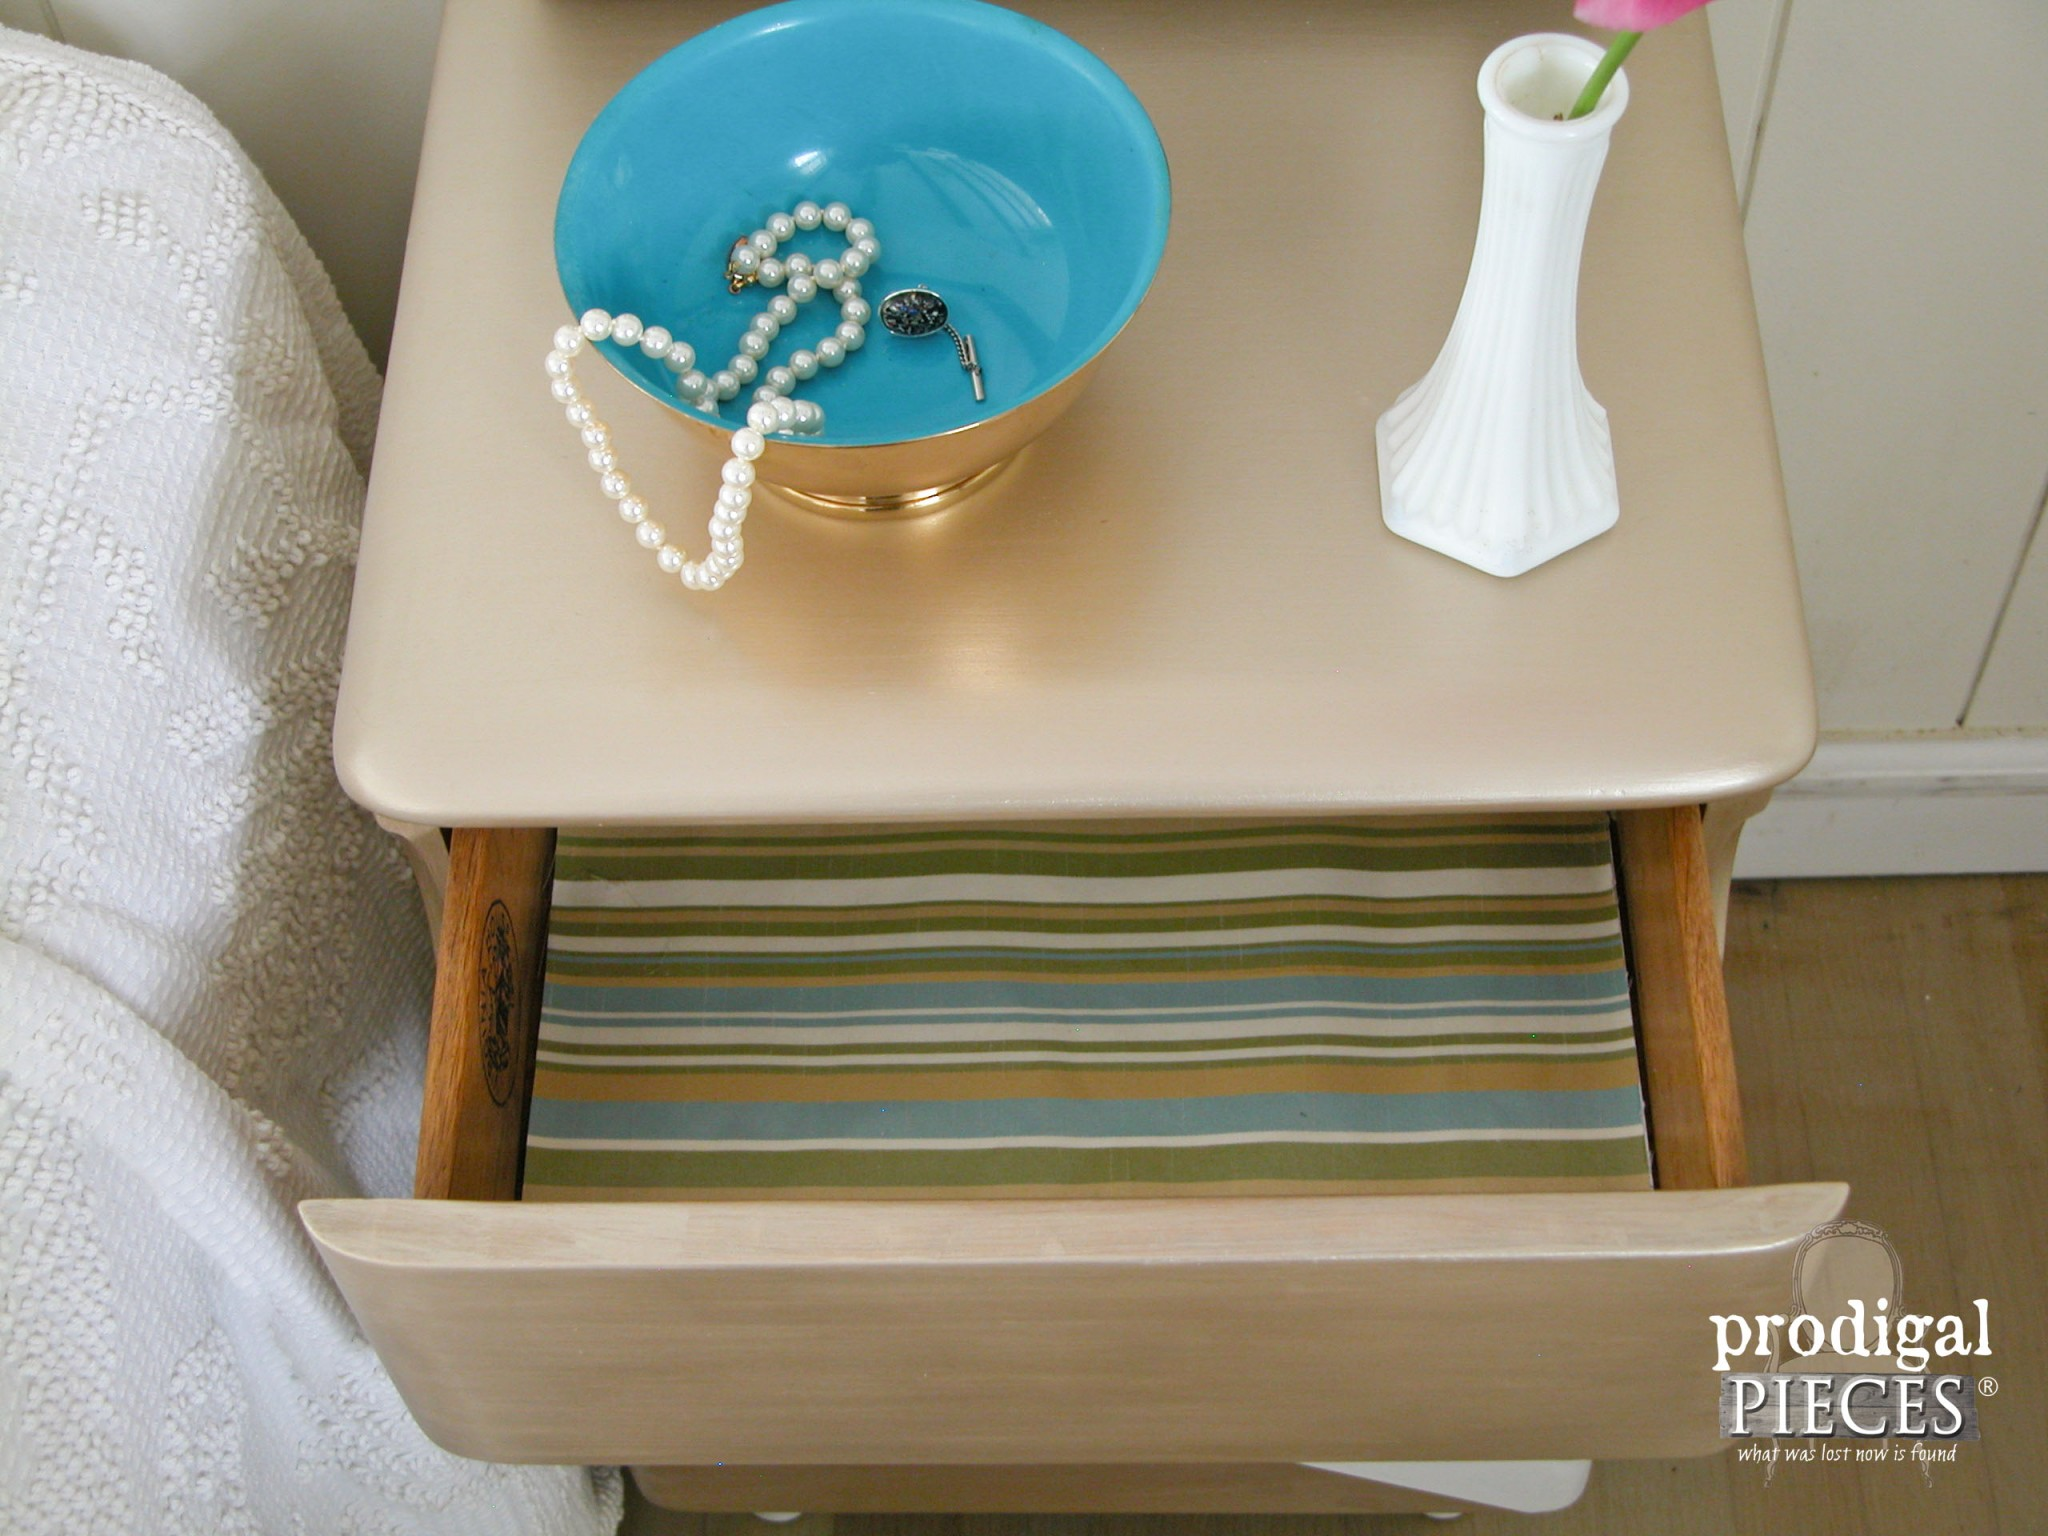 Fabric Lined Drawer of Vintage Art Deco Nighstand by Prodigal Pieces   www.prodigalpieces.com